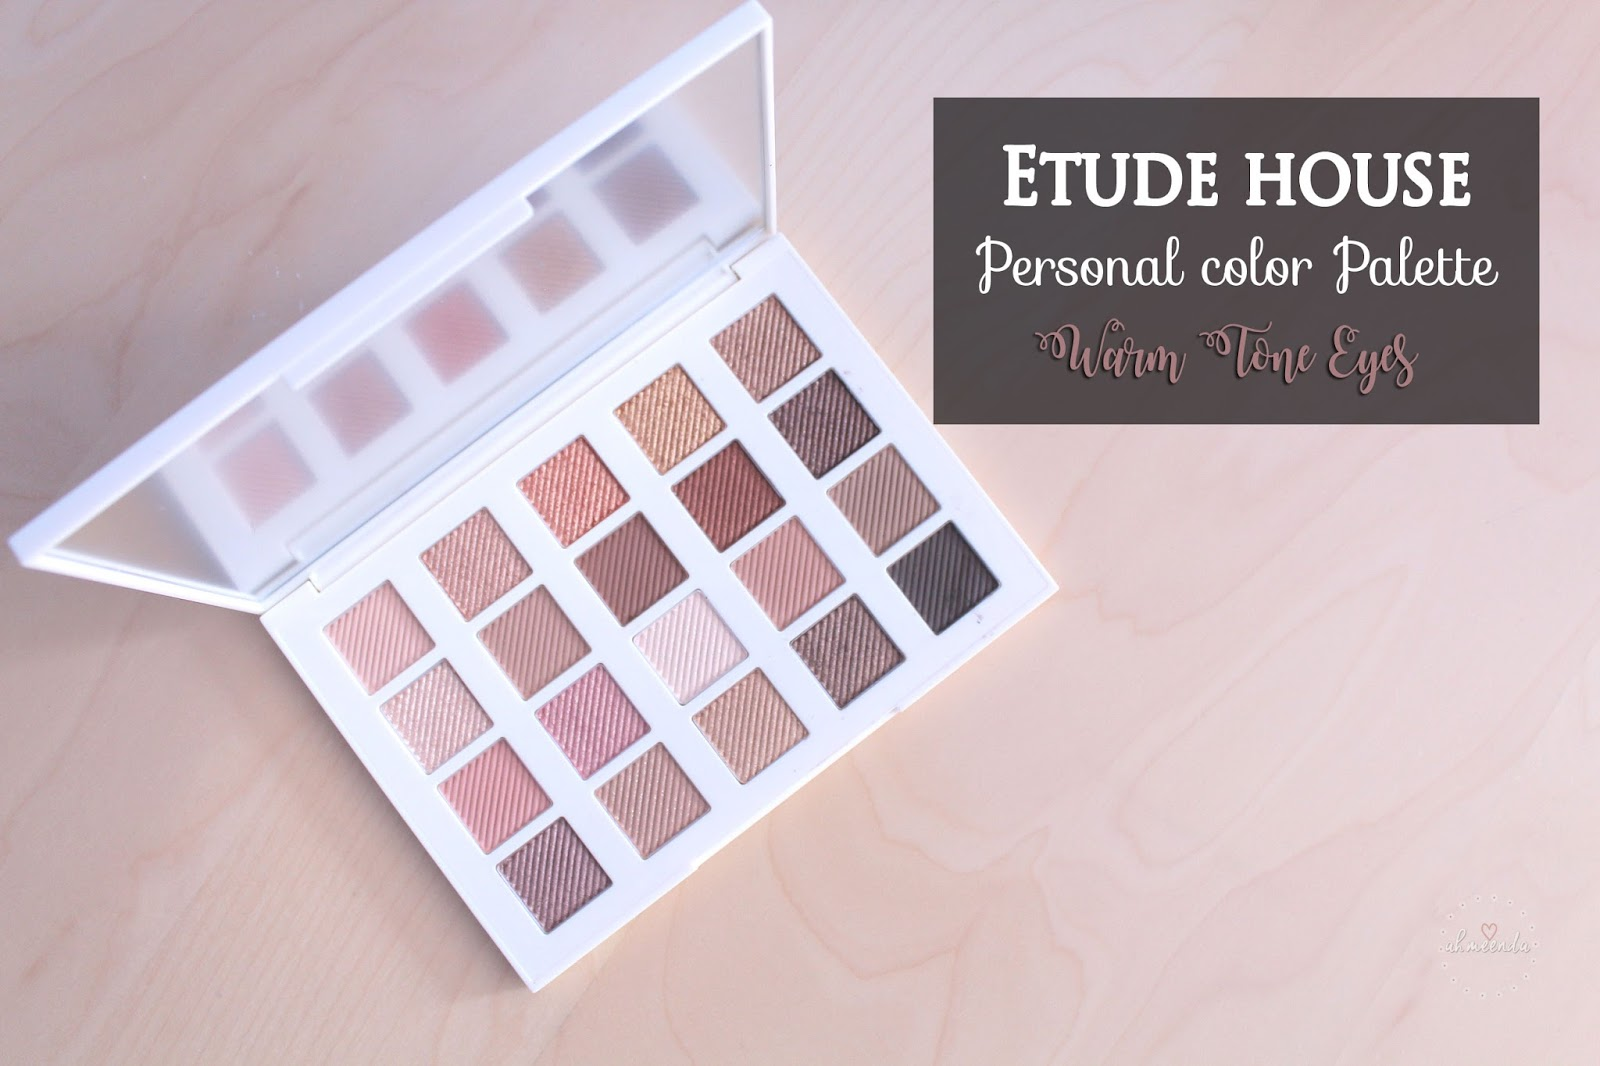 Personal Color Palette Pro Warm Tone Lips by Etude House #8